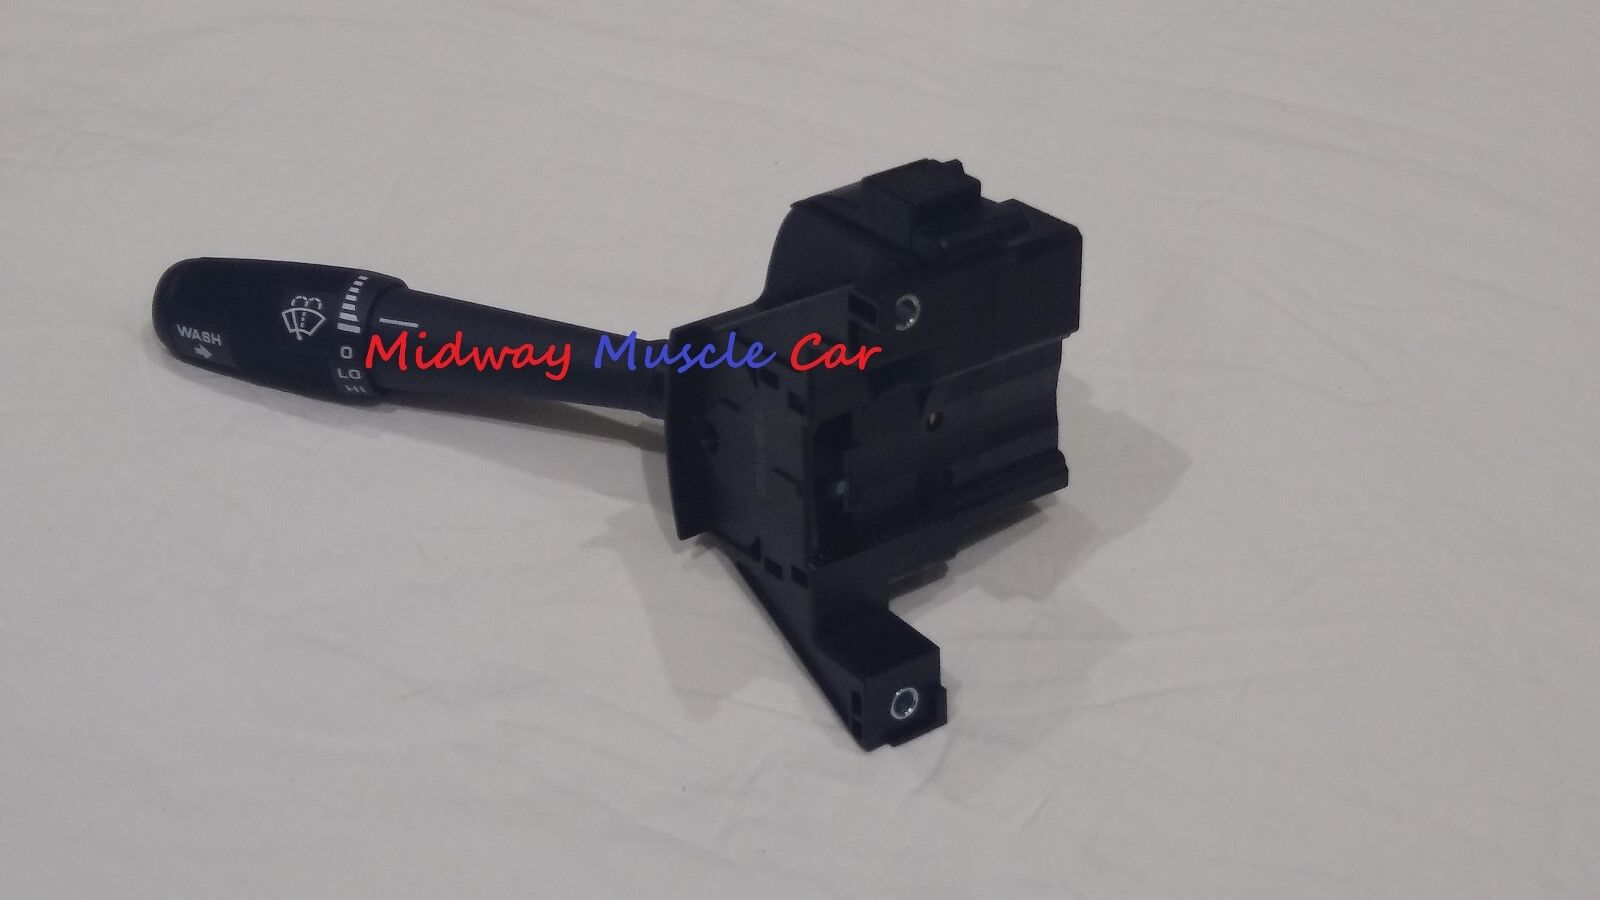 turn signal windshield wiper combination switch 87 88 89 Ford Mustang LX GT 5.0